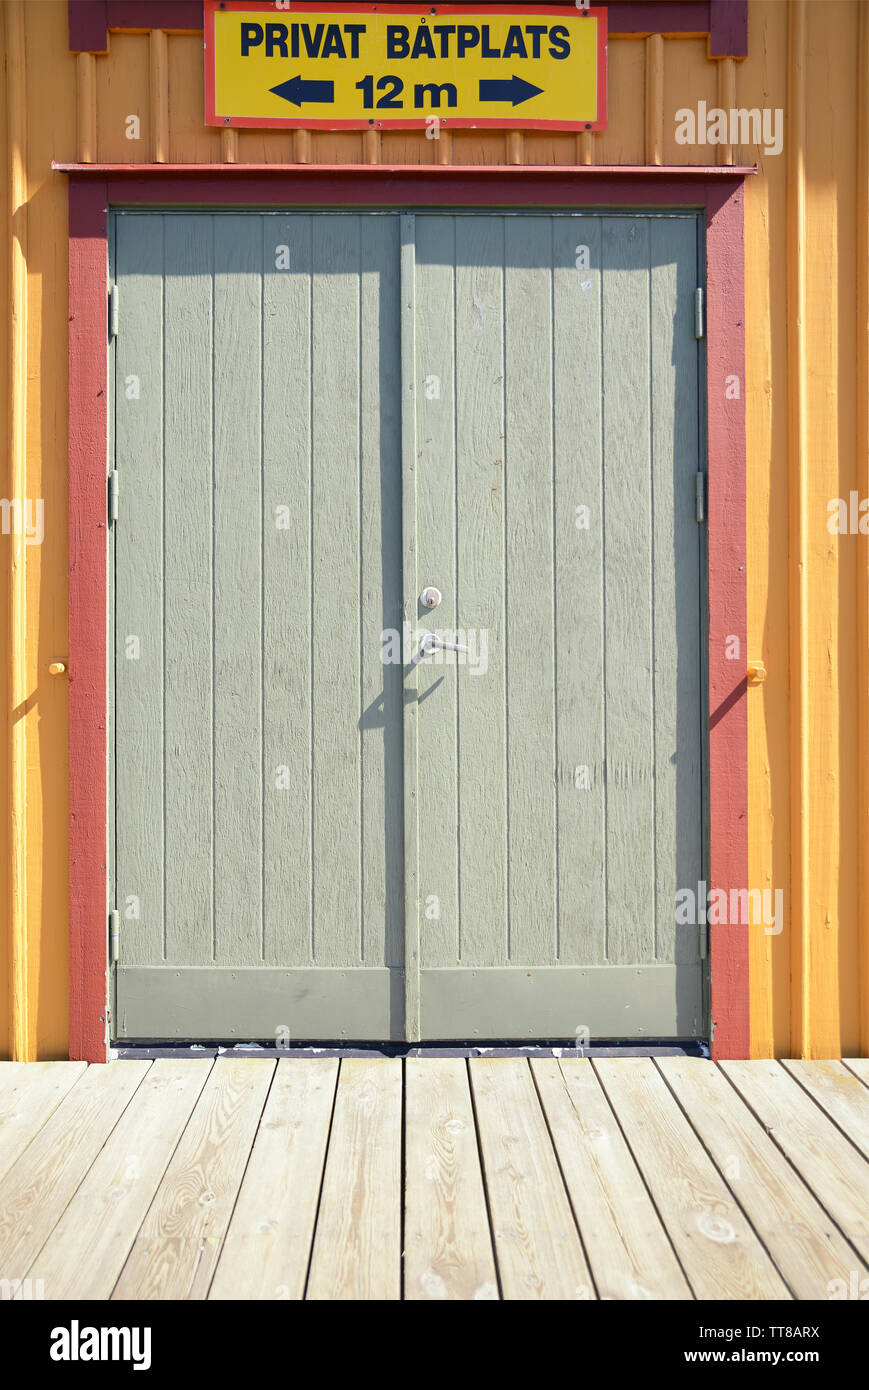 Old gray wooden garage door with Swedish prohibition sign - Stock Image